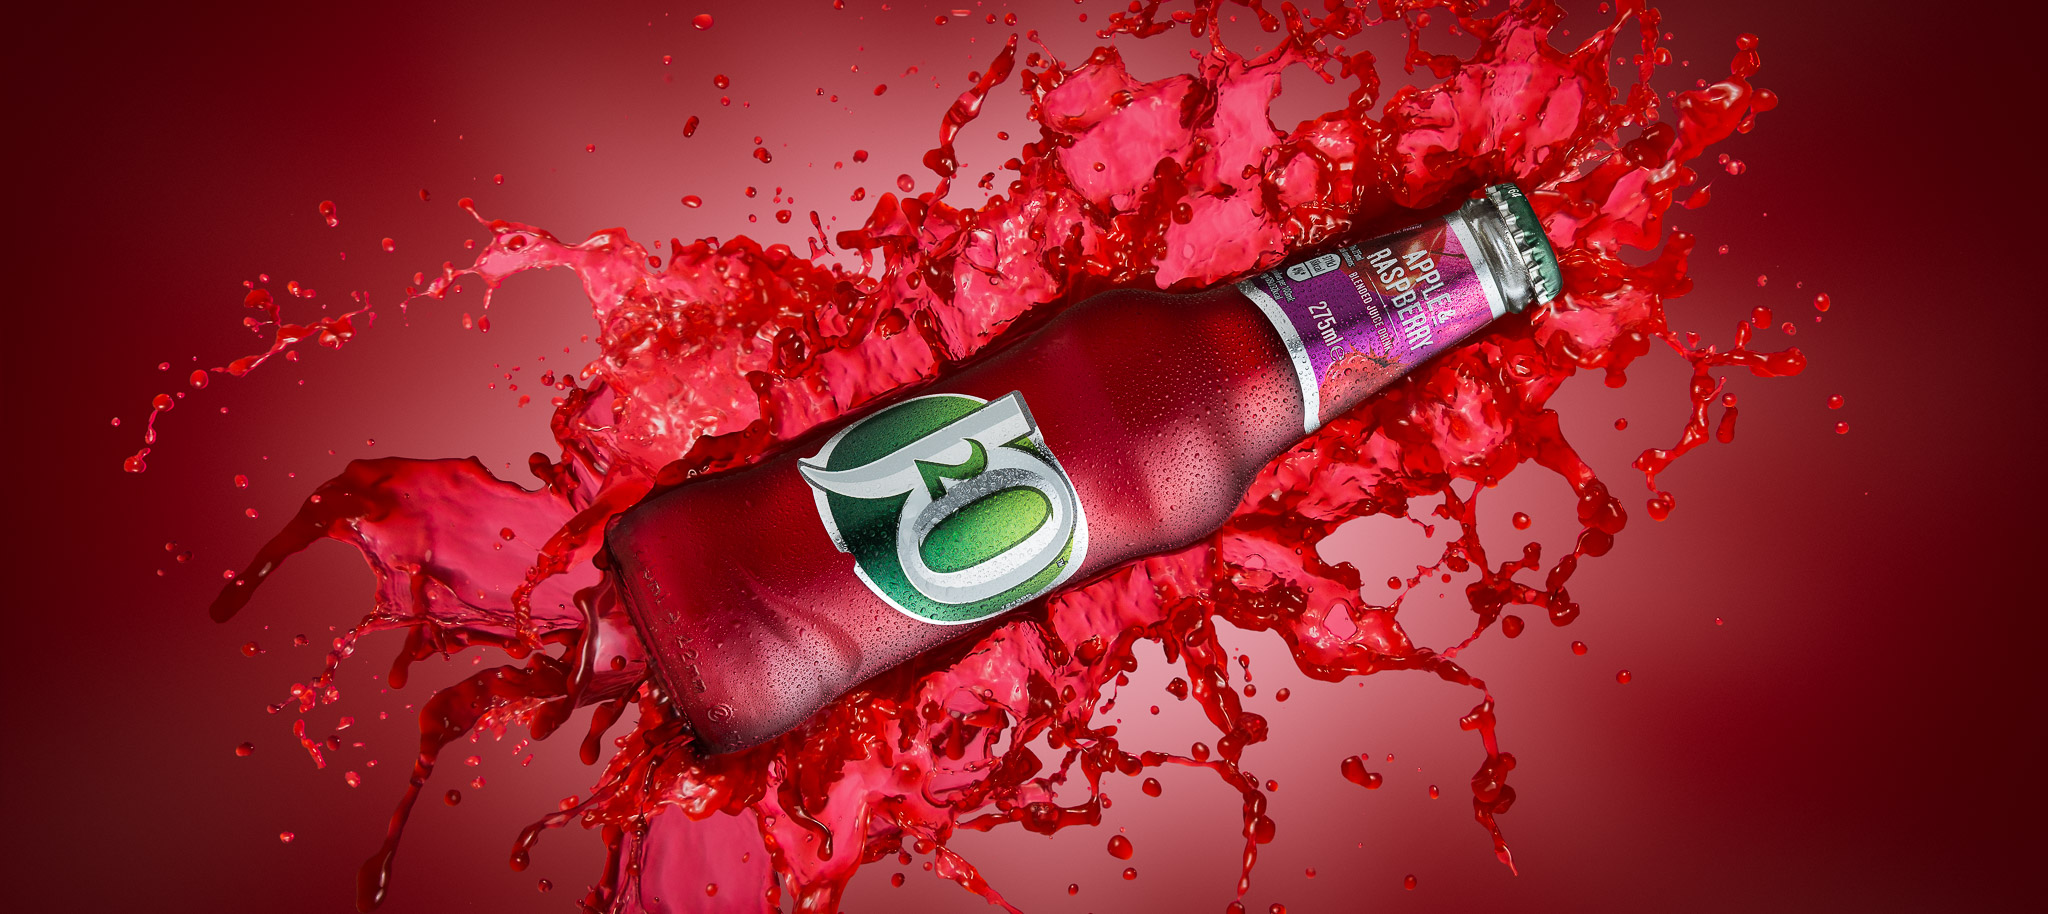 A bottle of J20 with splashes as an example of drinks photography